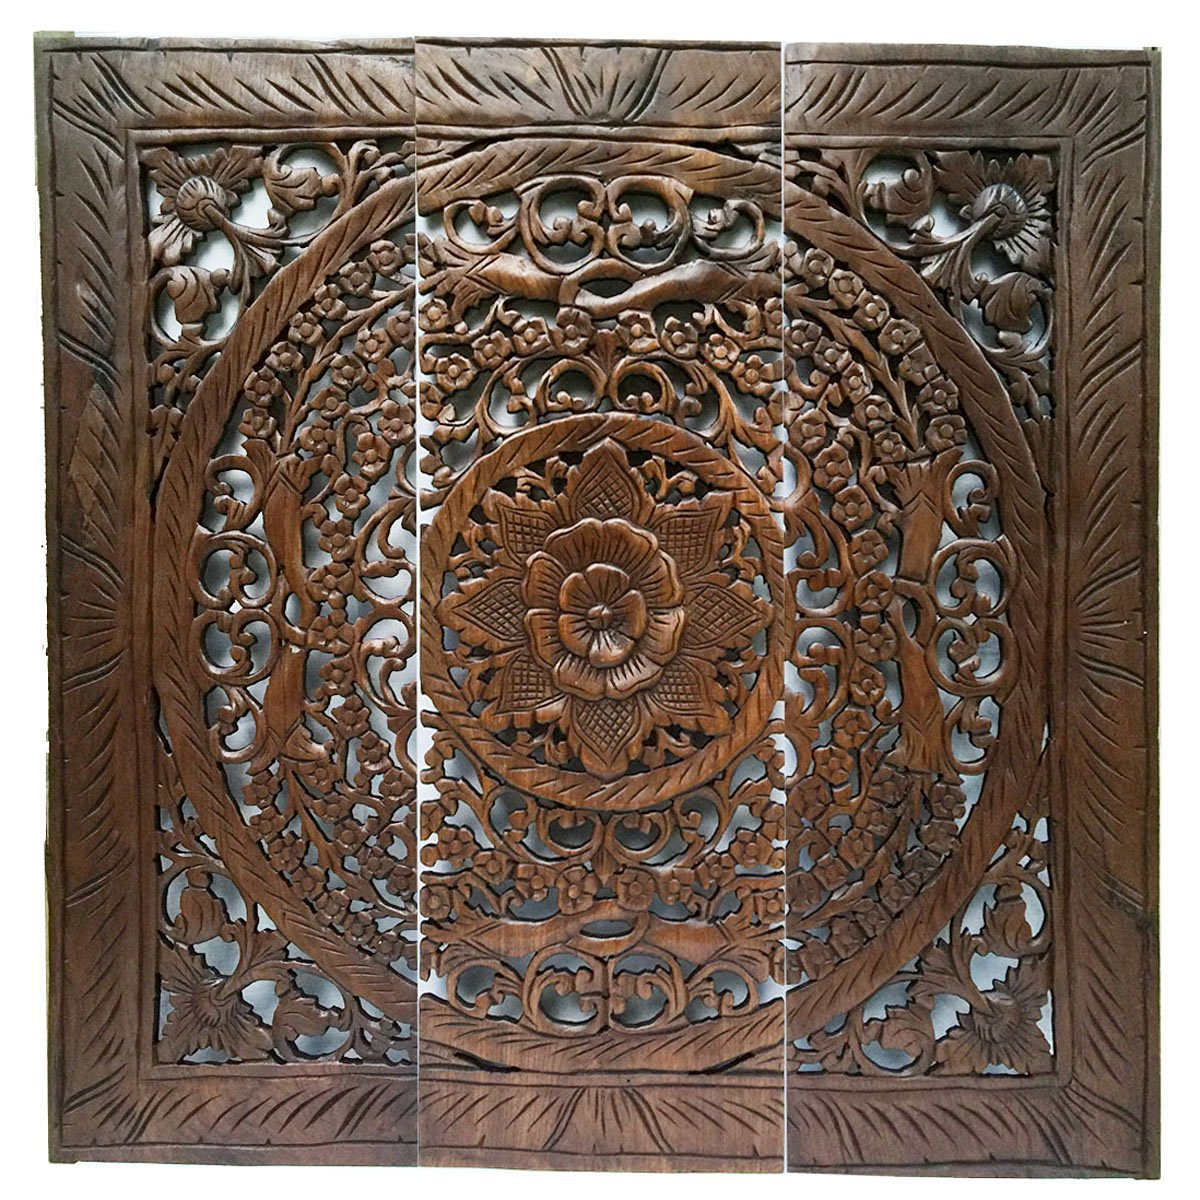 Large Wood Carved Wall Panels Fl Hanging Decorative Contemporary Decor